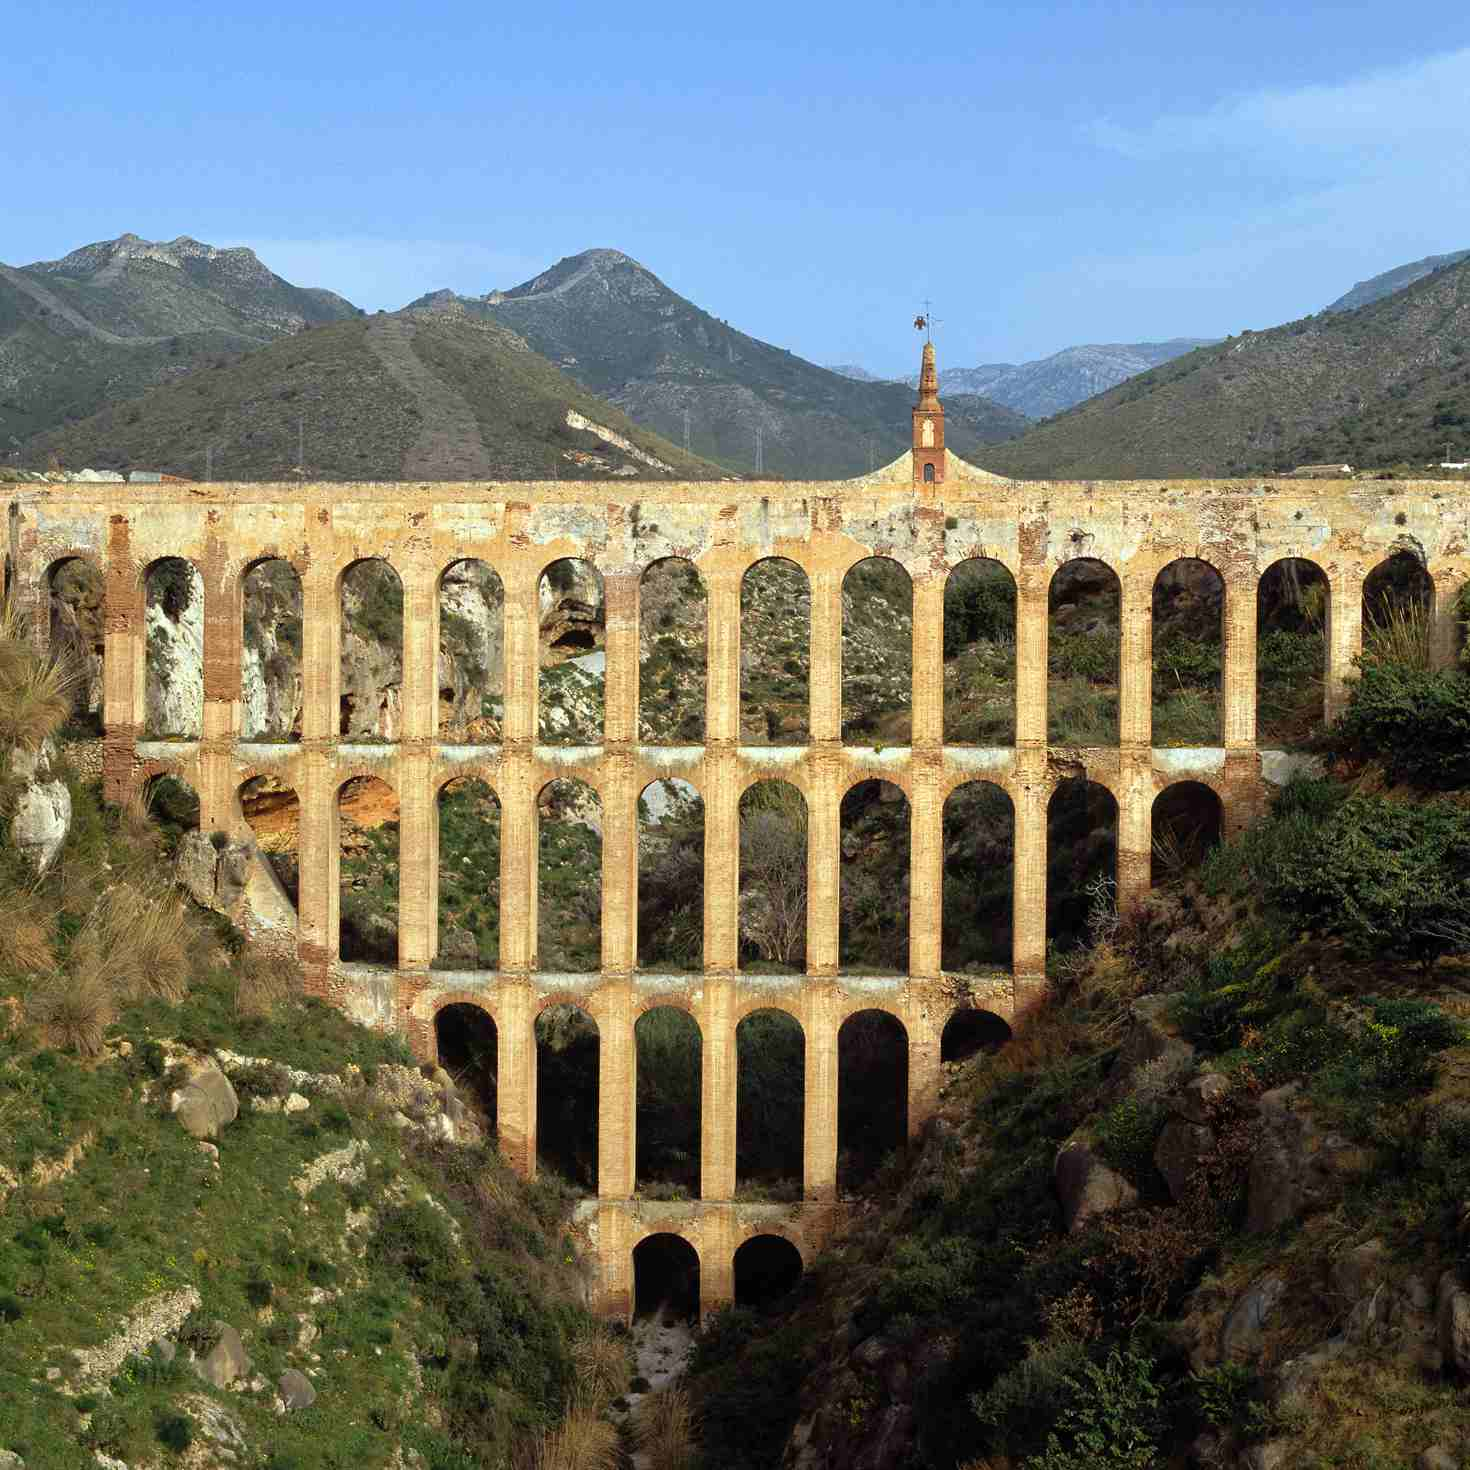 Roman Aqueduct in Spain, courtesy of the History Channel